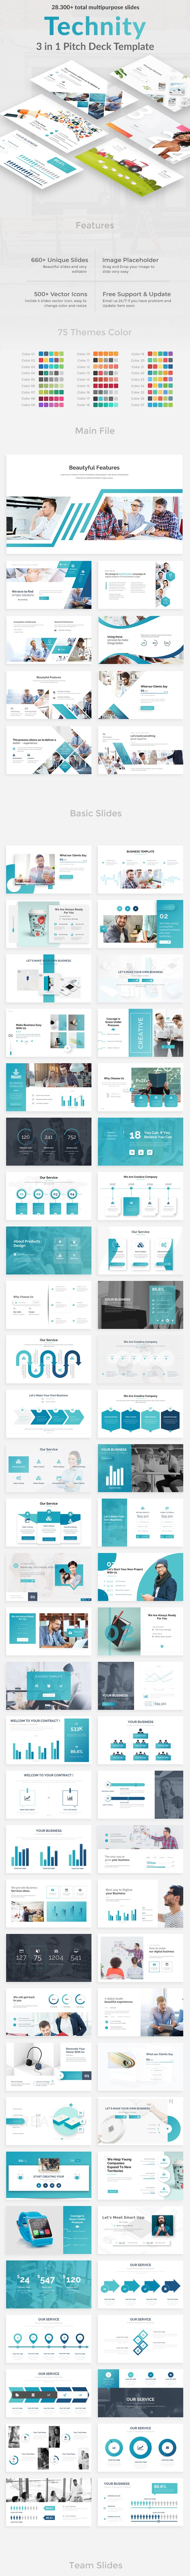 Technity 3 in 1 Pitch Deck Bunndle Powerpoint Template - Creative PowerPoint Templates